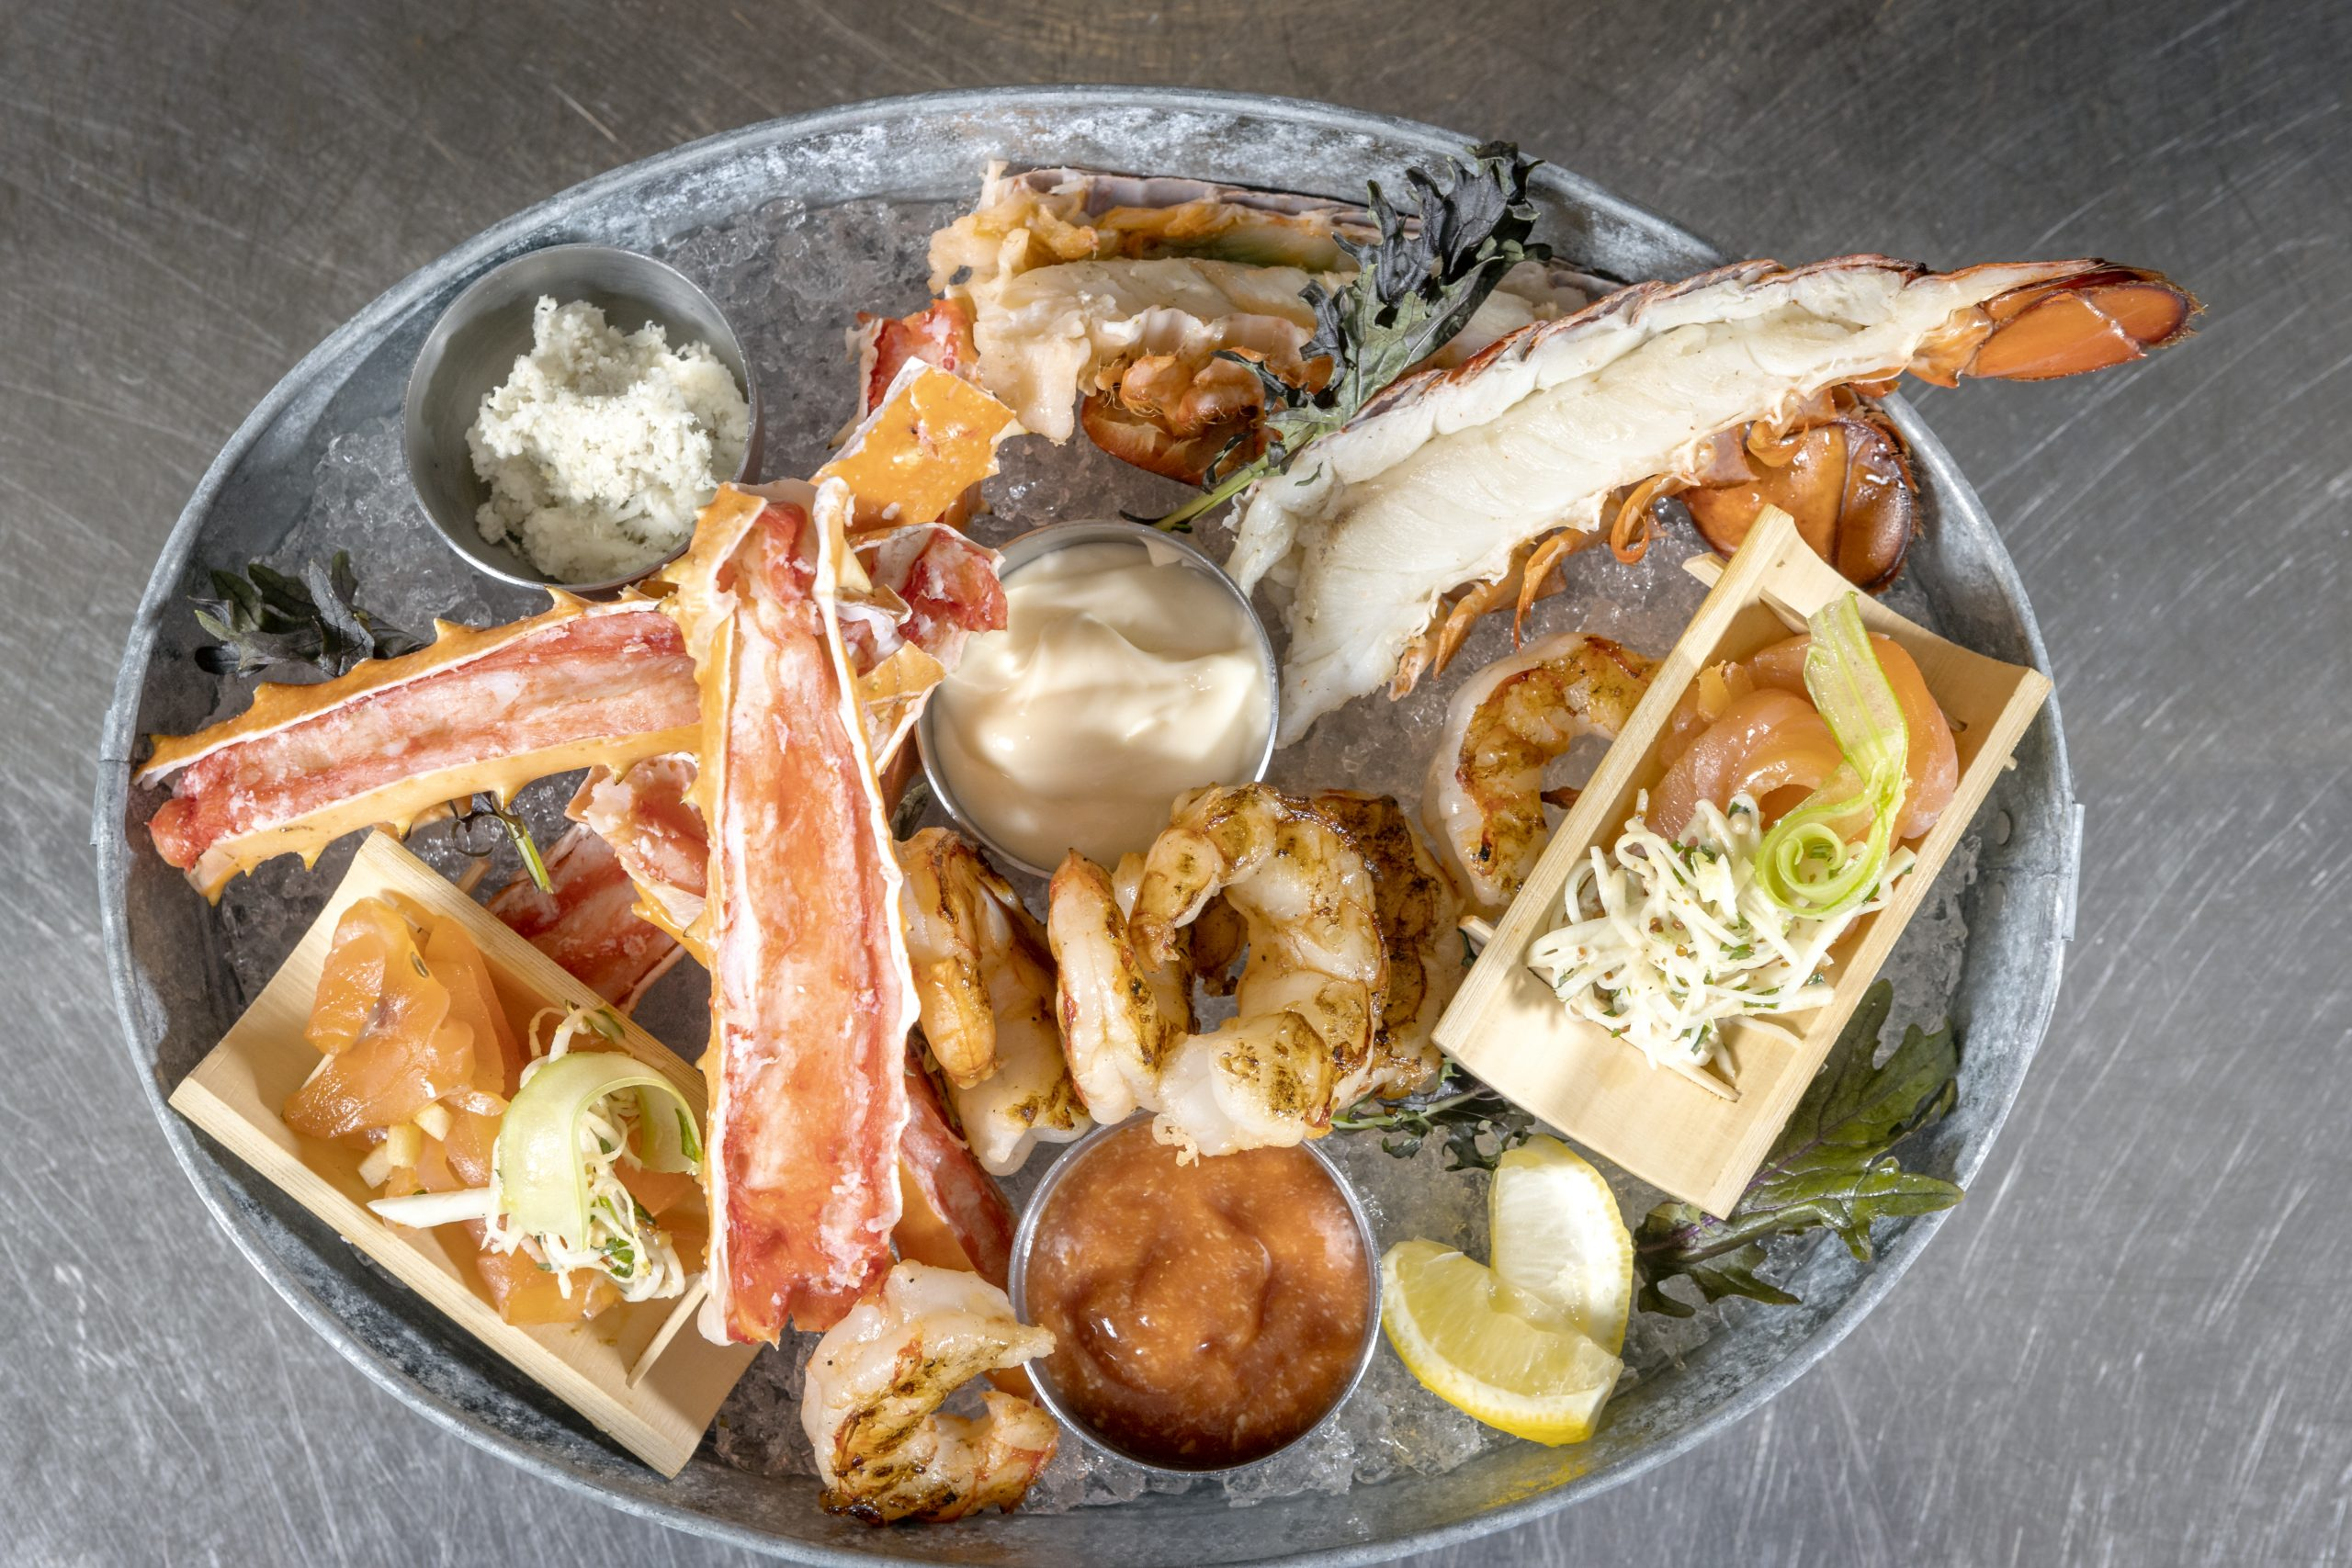 BEARFOOT BISTRO SUMMER PICNIC, BBQ BOXES & SEAFOOD PLATTER TO-GO